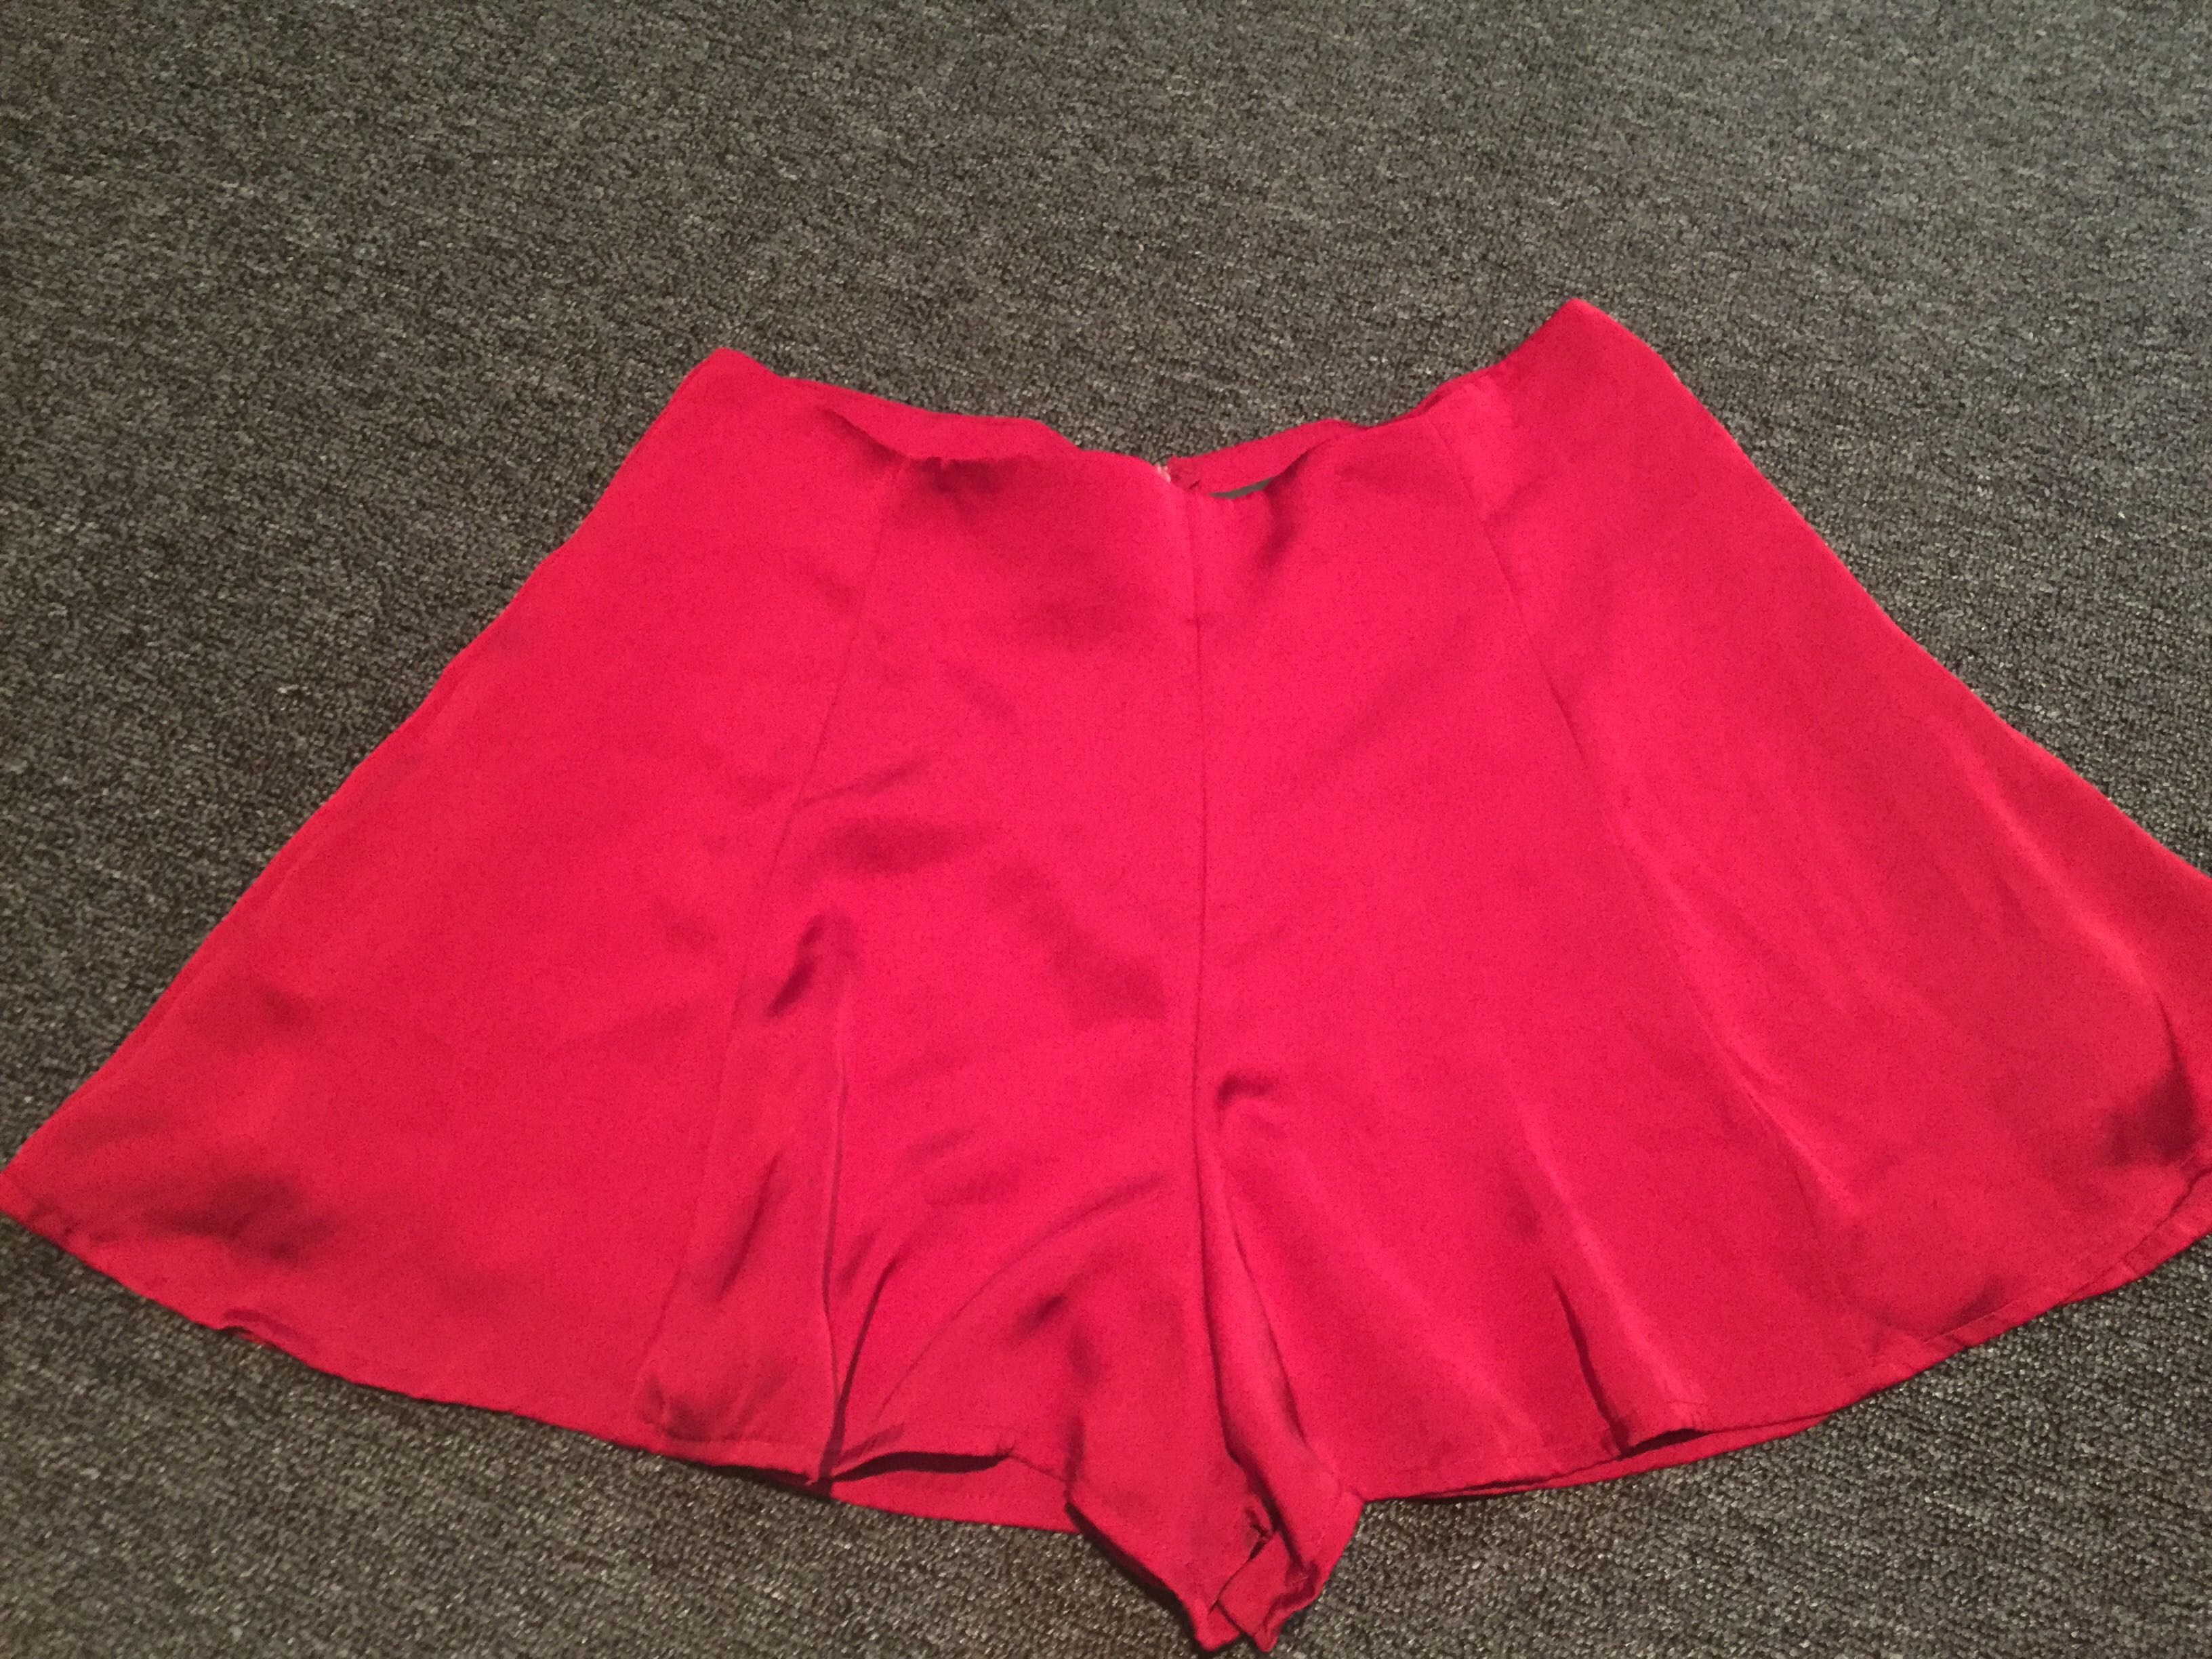 Glassons silky red shorts